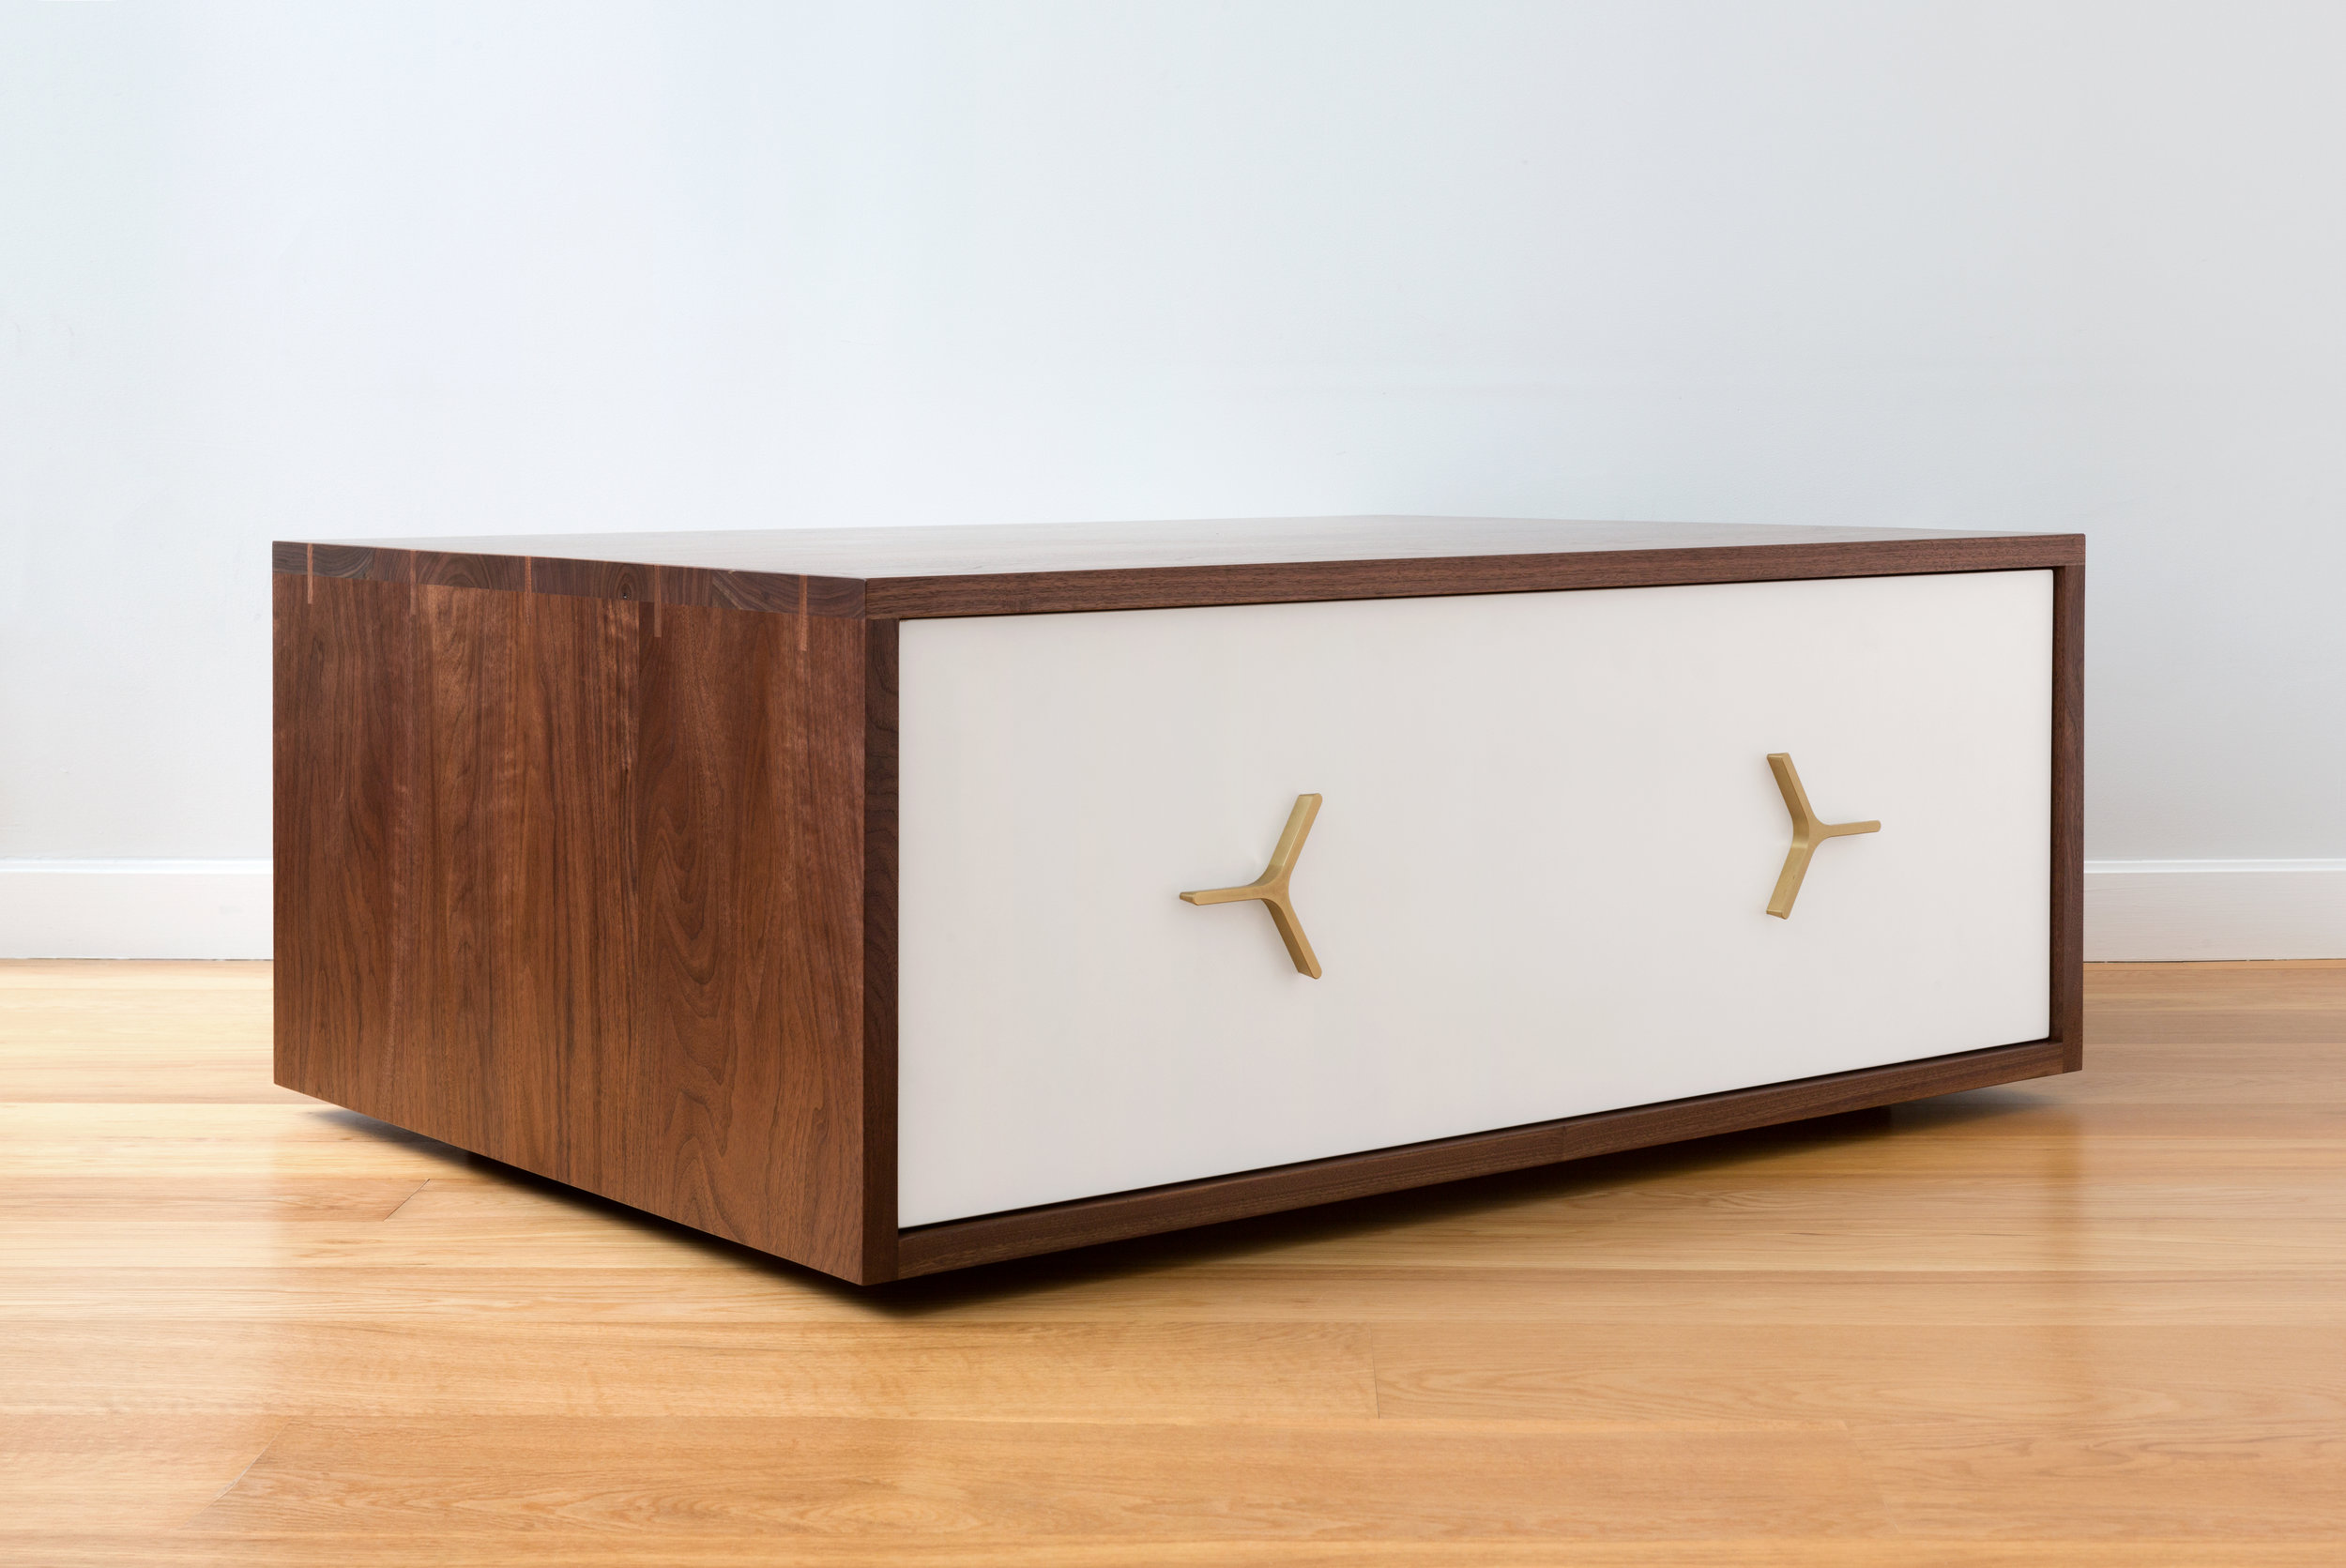 Flux Coffee Table with Storage by Piet Houtenbos